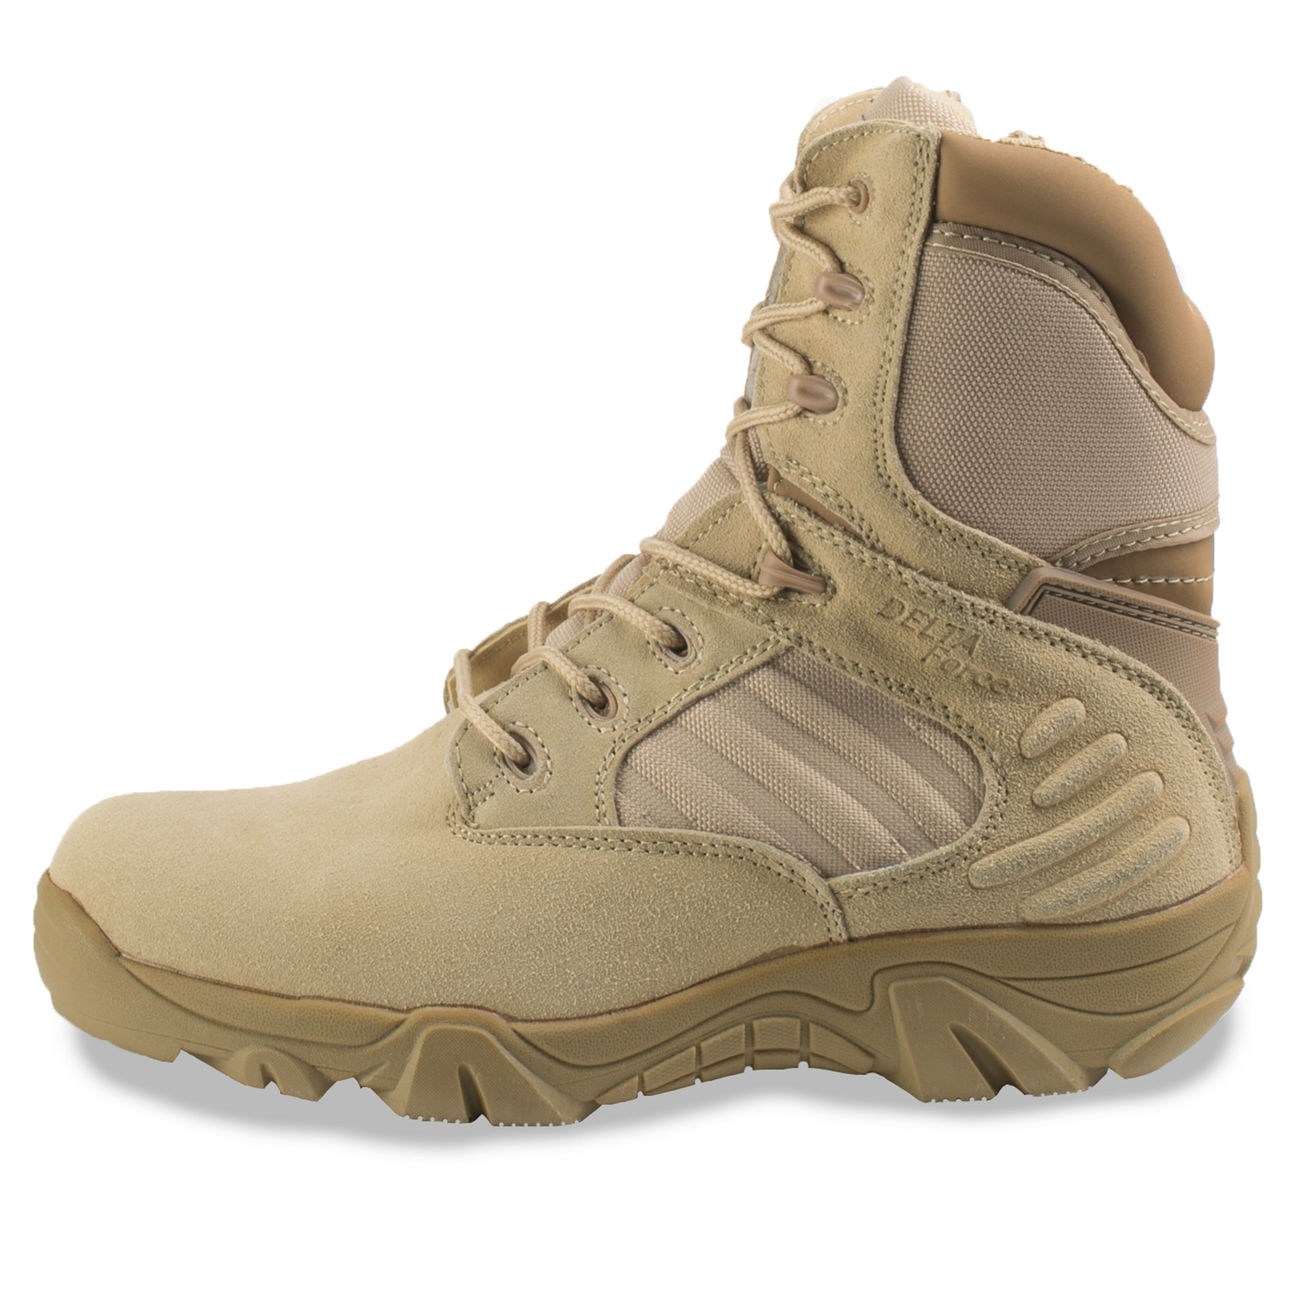 McAllister Stiefel Delta Force Tactical Outdoor Boots khaki 0